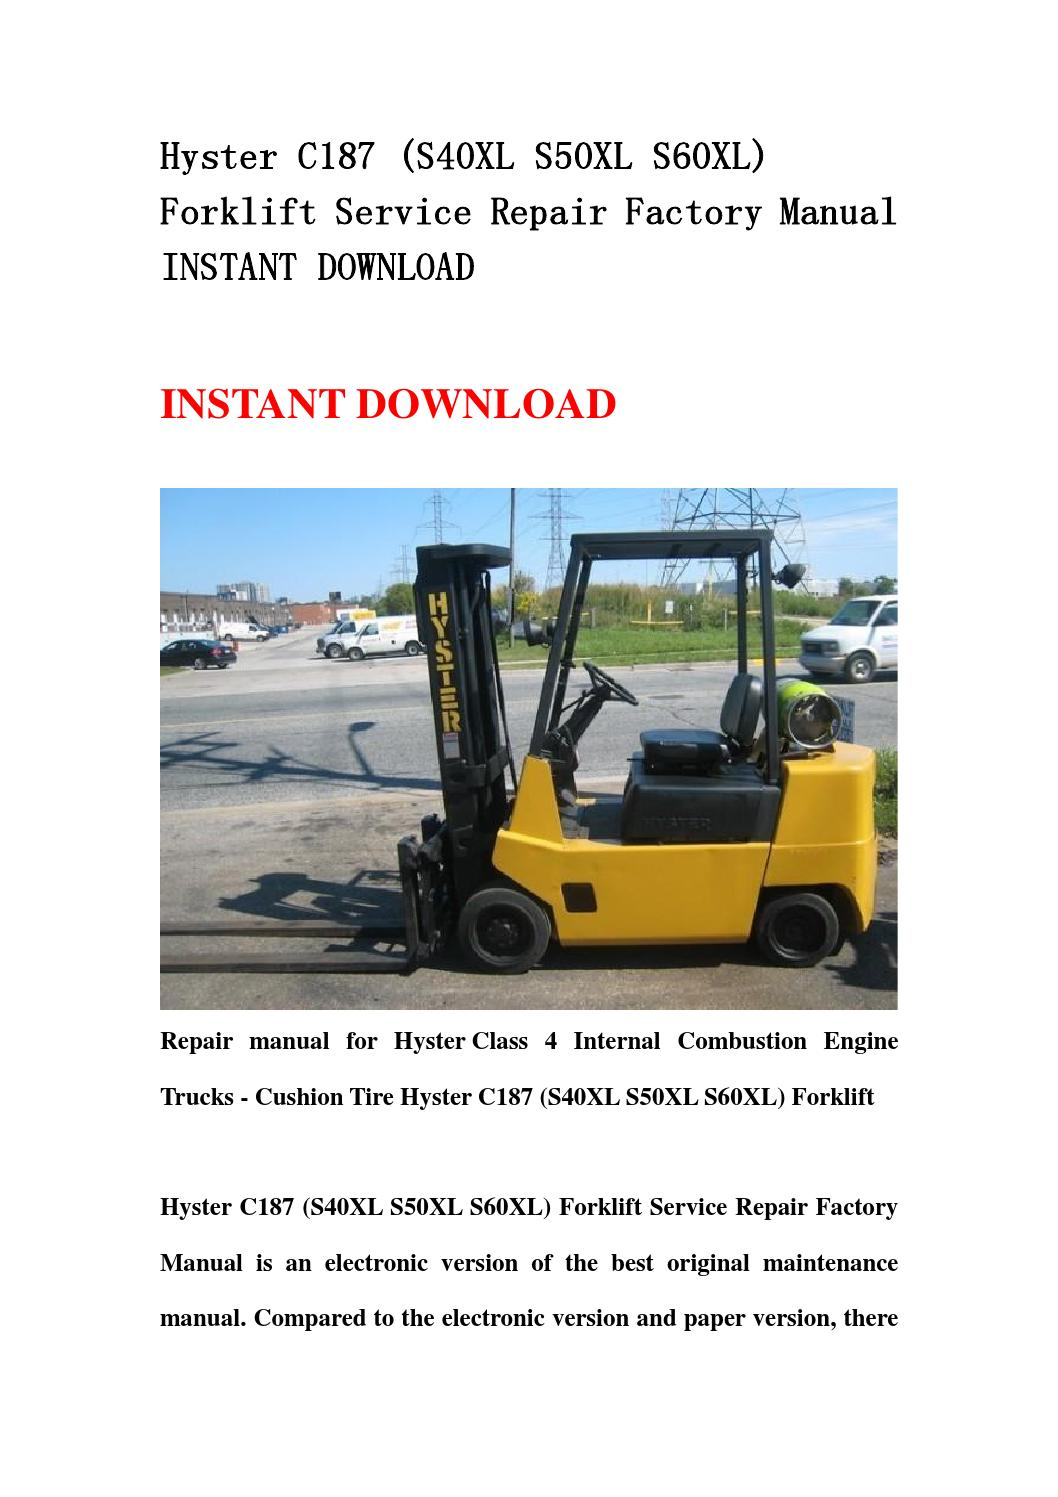 Hyster 65 Forklift Wiring Diagram Best Wiring Library